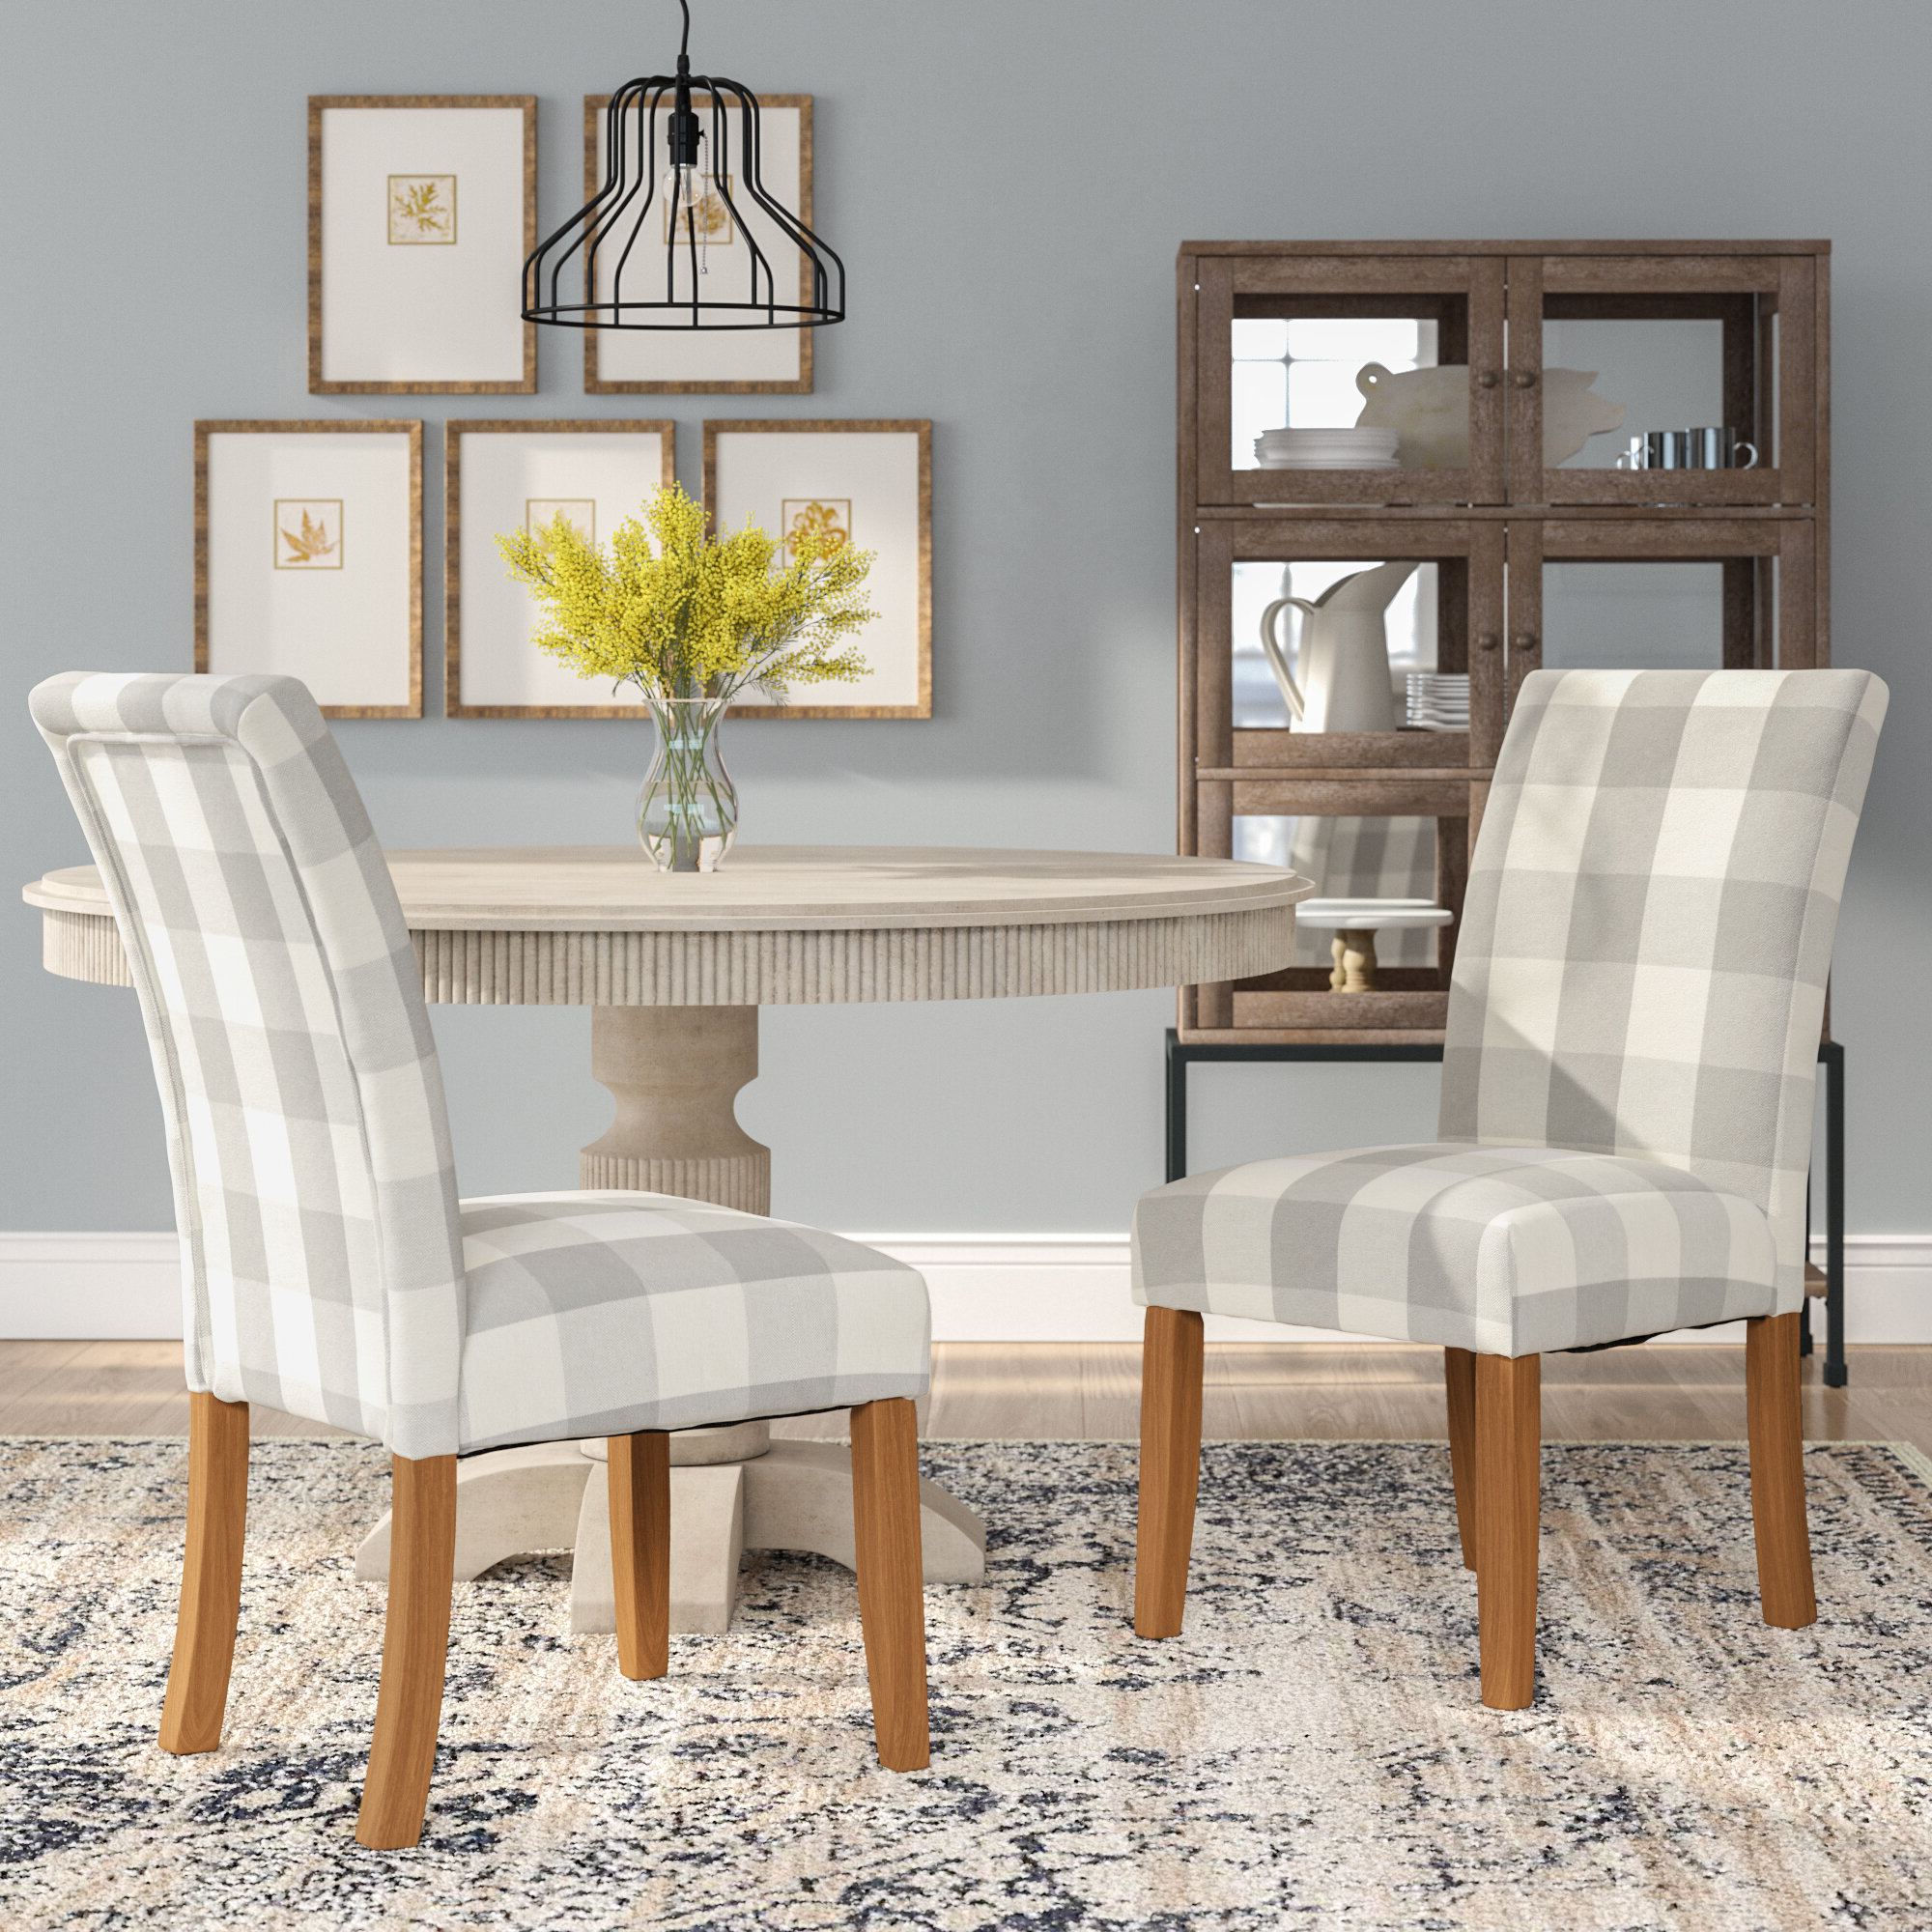 Wayfair In 2019 Aime Upholstered Parsons Chairs In Beige (View 5 of 20)